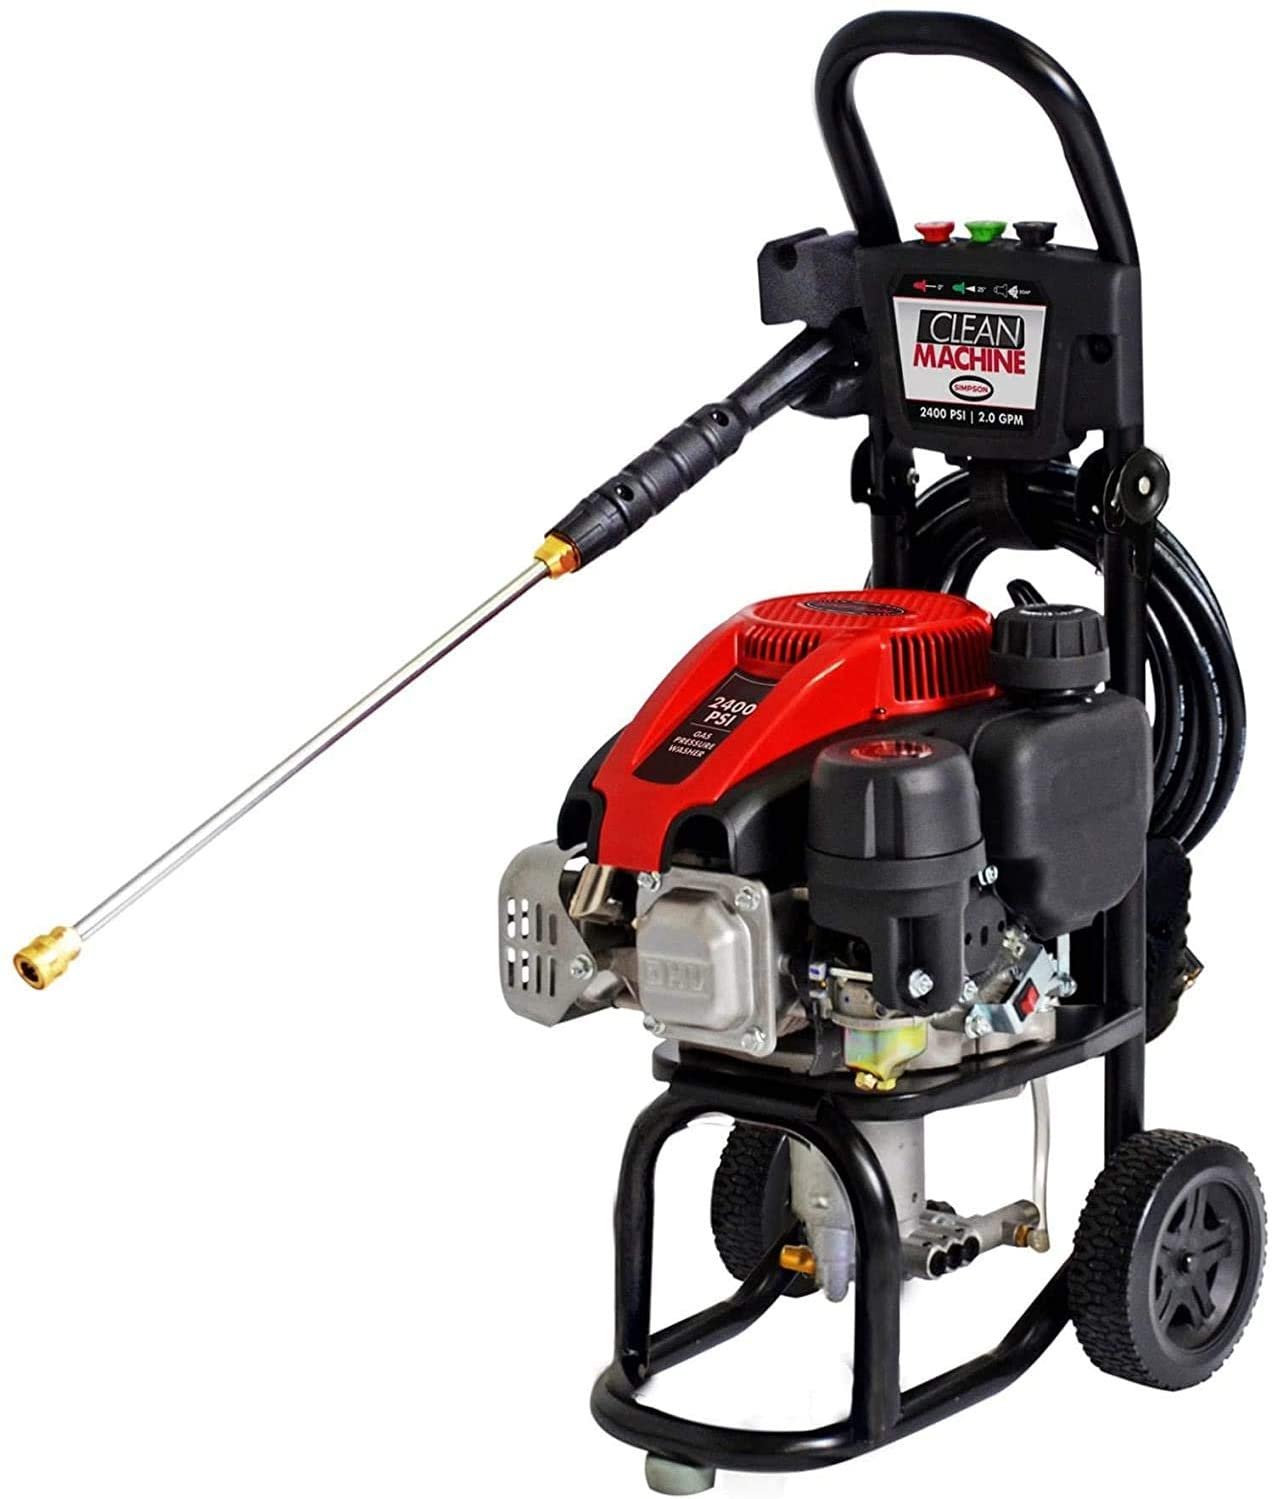 Simpson Cleaning CM60912 2400 PSI Gas Pressure Washer